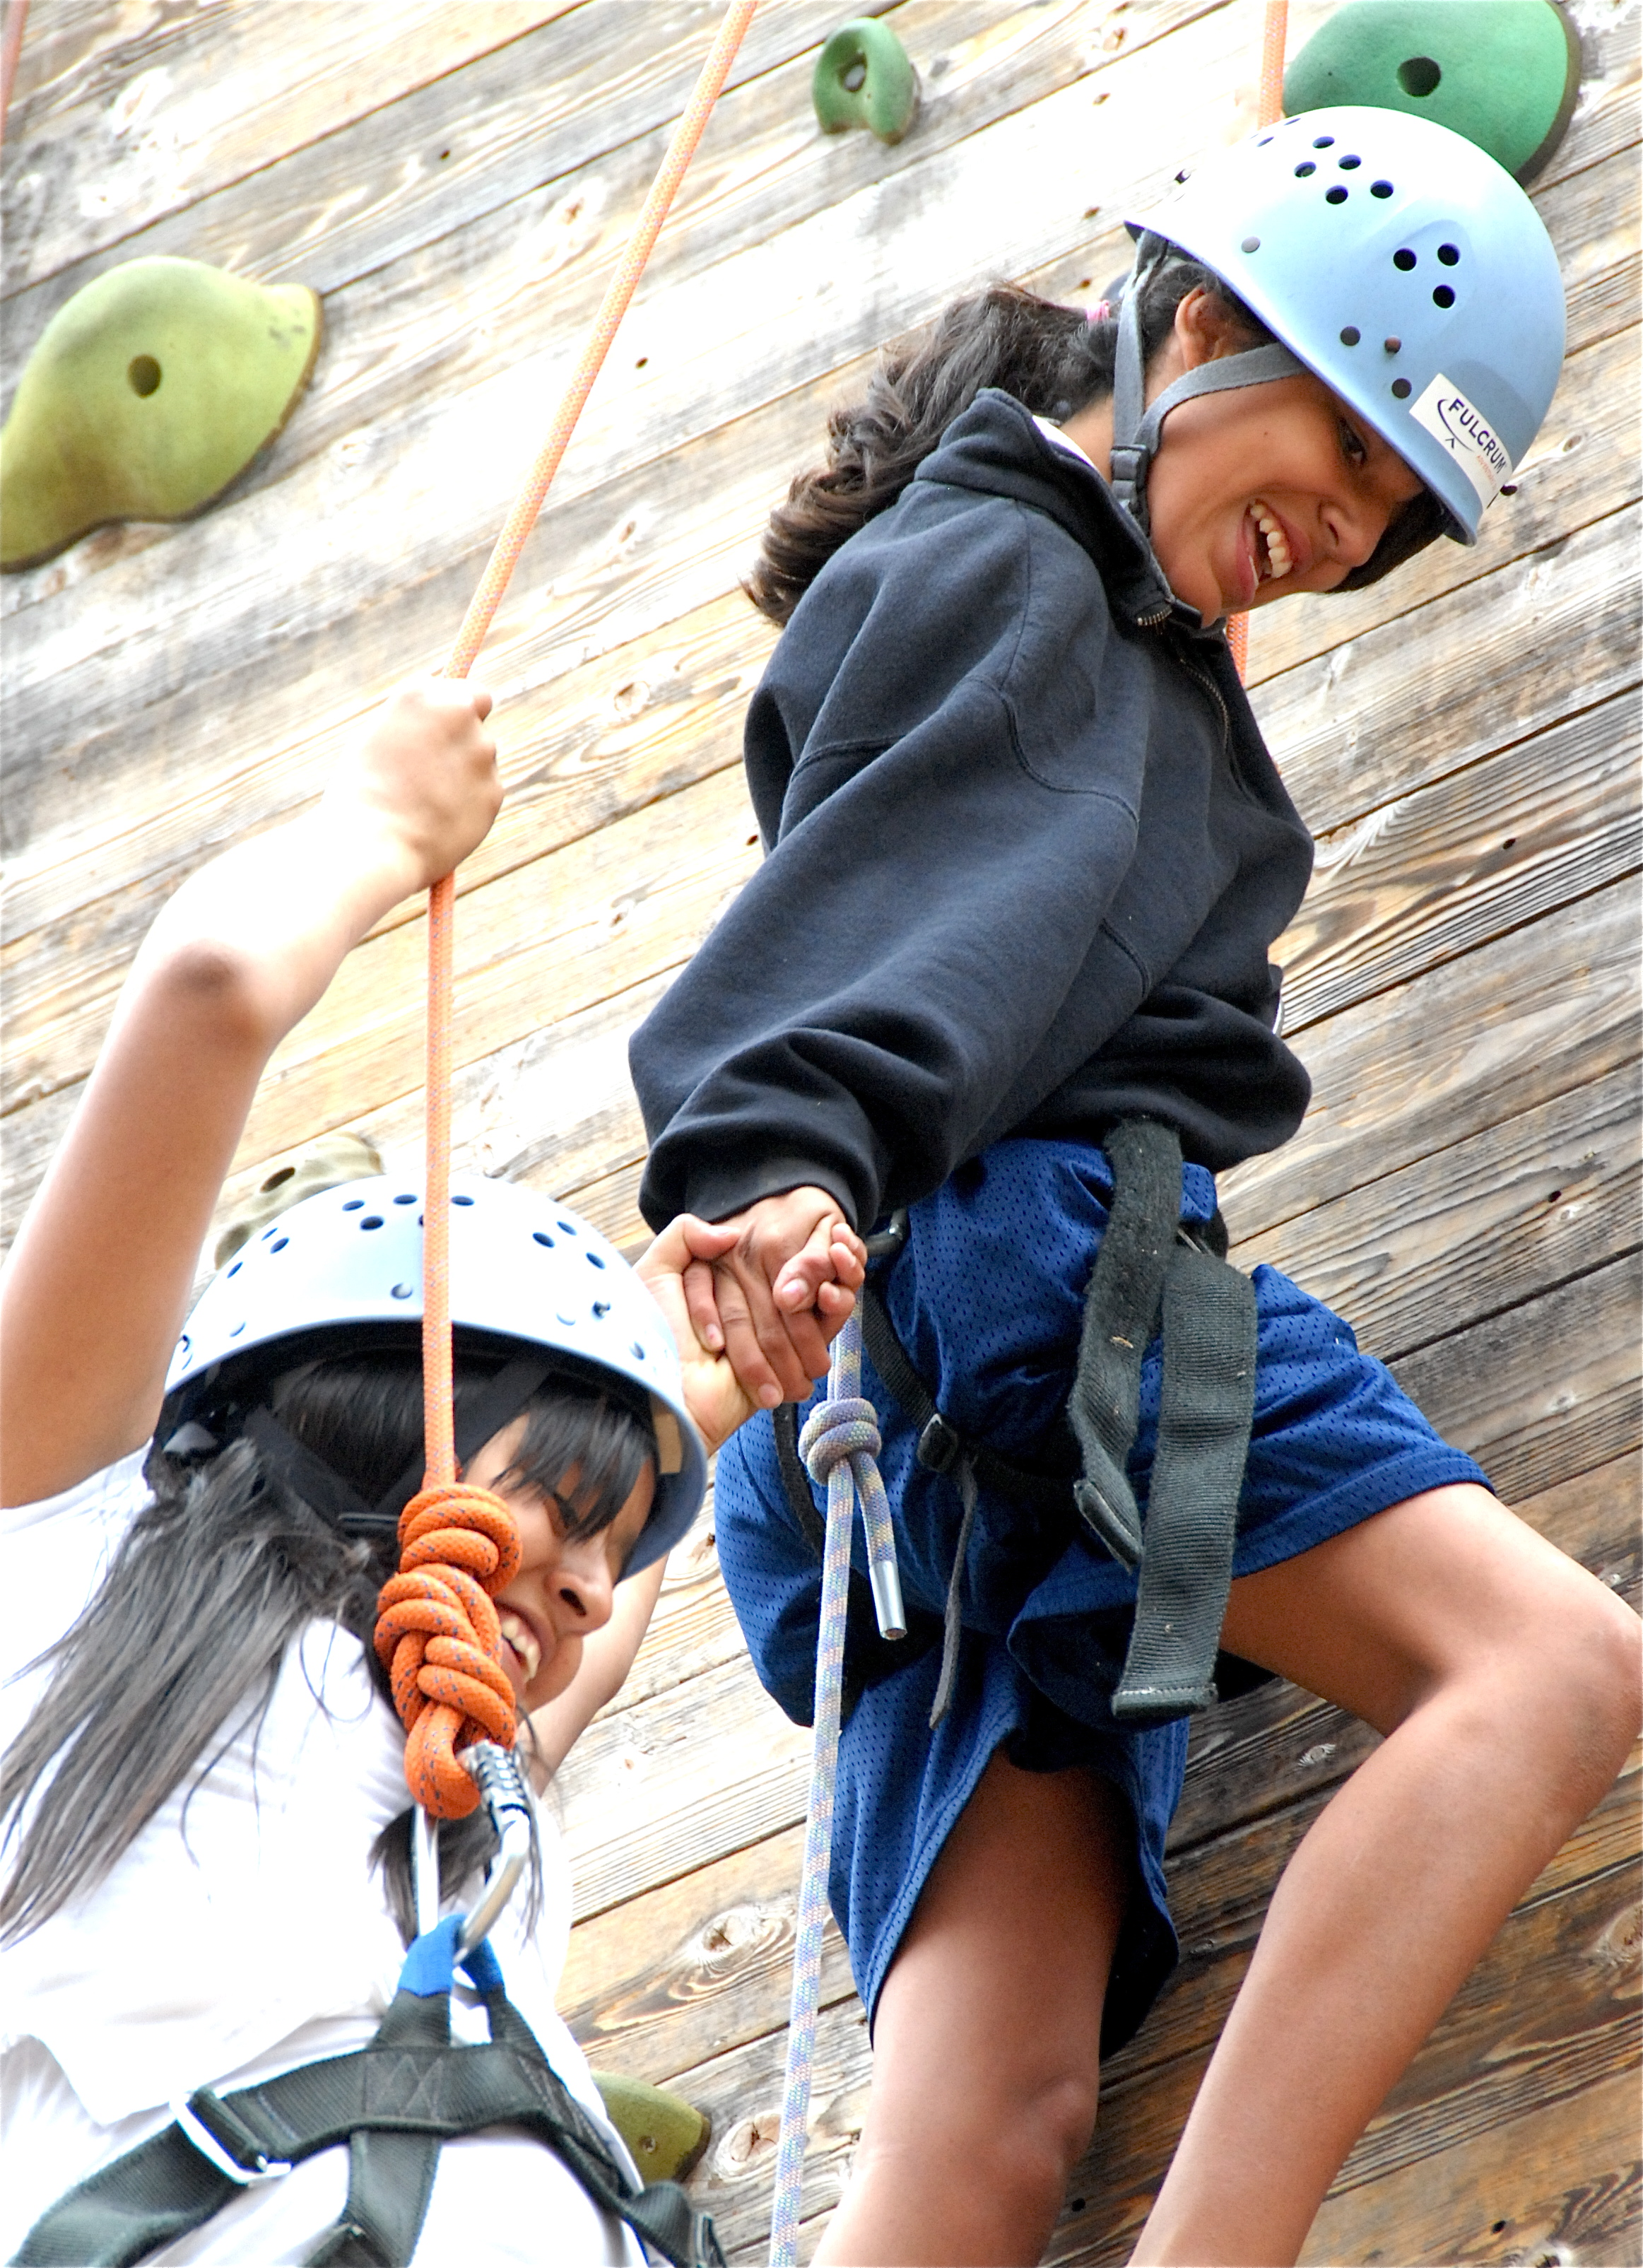 Fulcrum Team Building,leandng a helping hand on the rockwall at Culver City 2.JPG